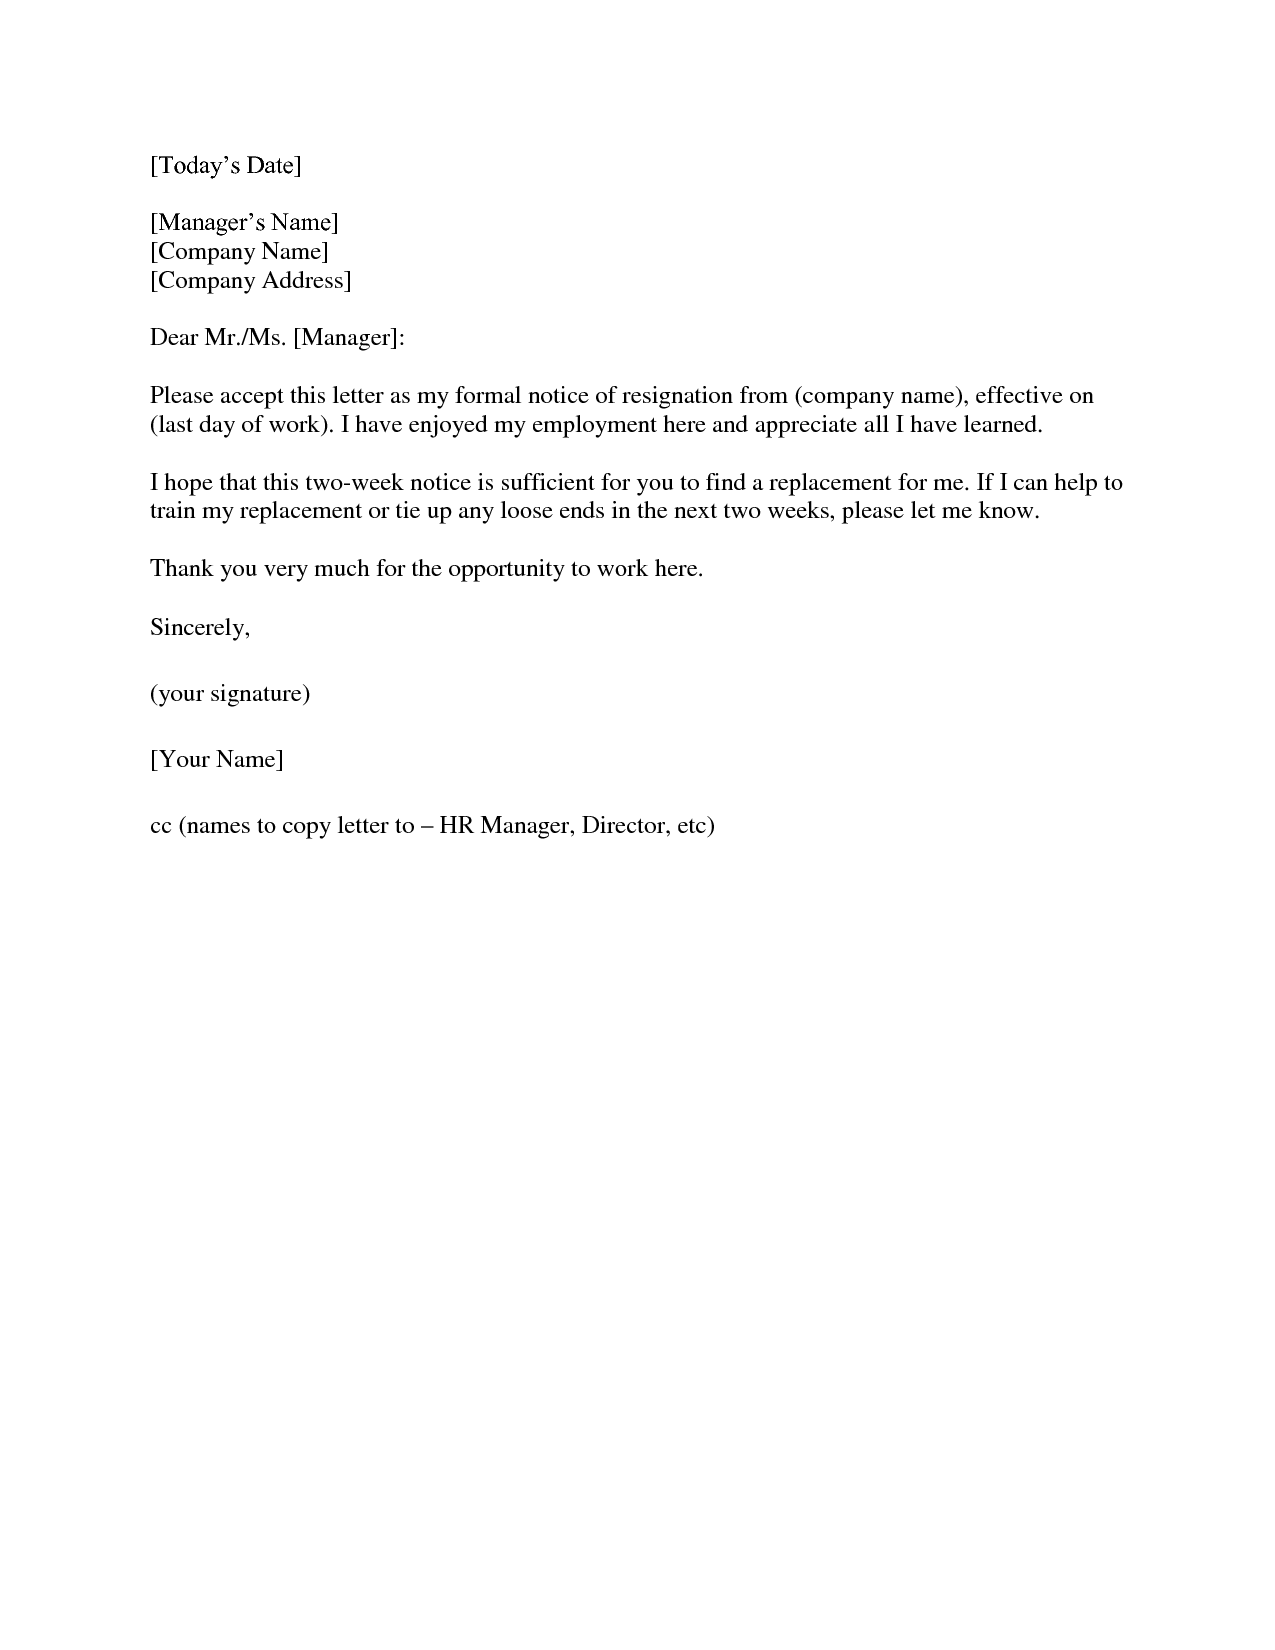 resignation letter format resignation letters 2 weeks notice formal polite ways examples of letters of resignation sample of good resignation letter. Resume Example. Resume CV Cover Letter